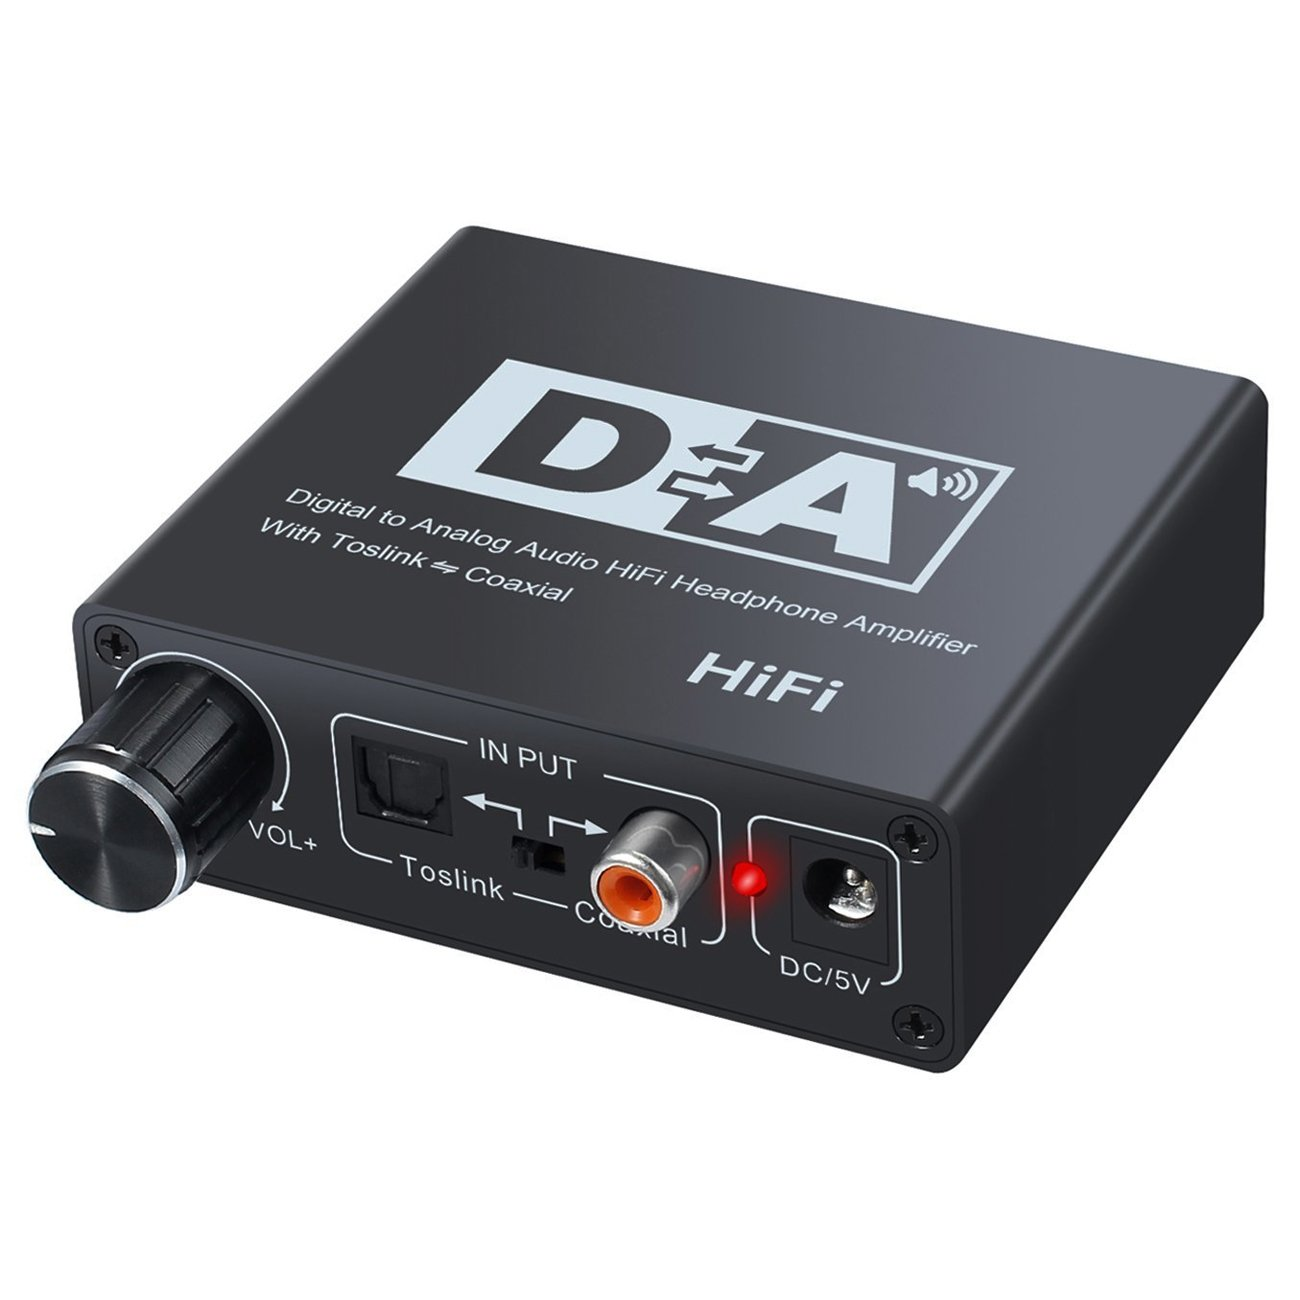 Easy-Link 192kHz DAC Converter Digital to Analog Audio Converter Volume Control Digital Coaxial Toslink to Analog Stereo L/R RCA 3.5mm Audio Adapter for Blu-ray DVD TV Sky HD Xbox HiFi Systems